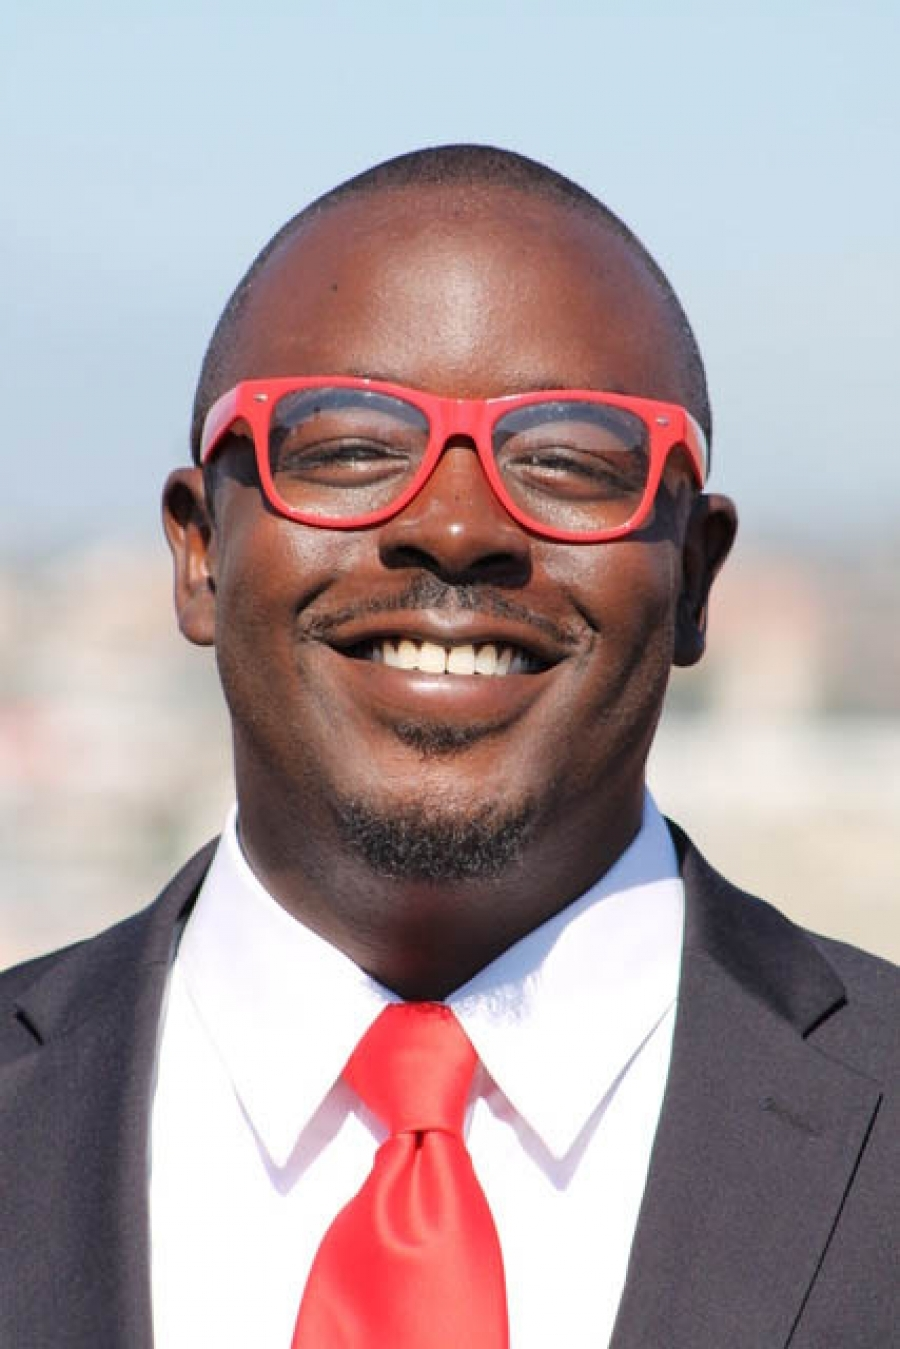 Motivational Speaker and Author John-Leslie Brown, Son of Les Brown, Comes To Sacramento This Weekend